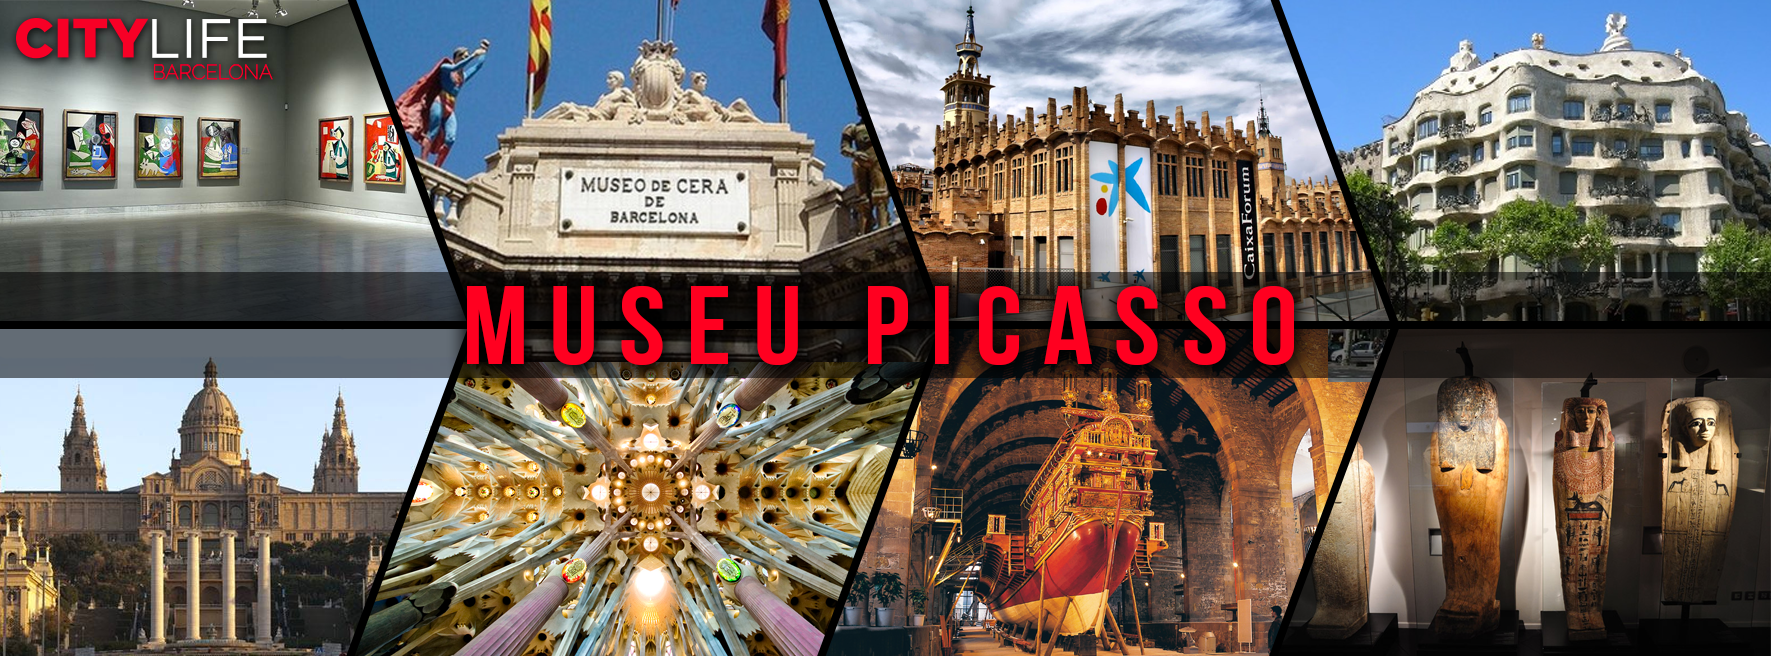 Discover the Museu Picasso for FREE!